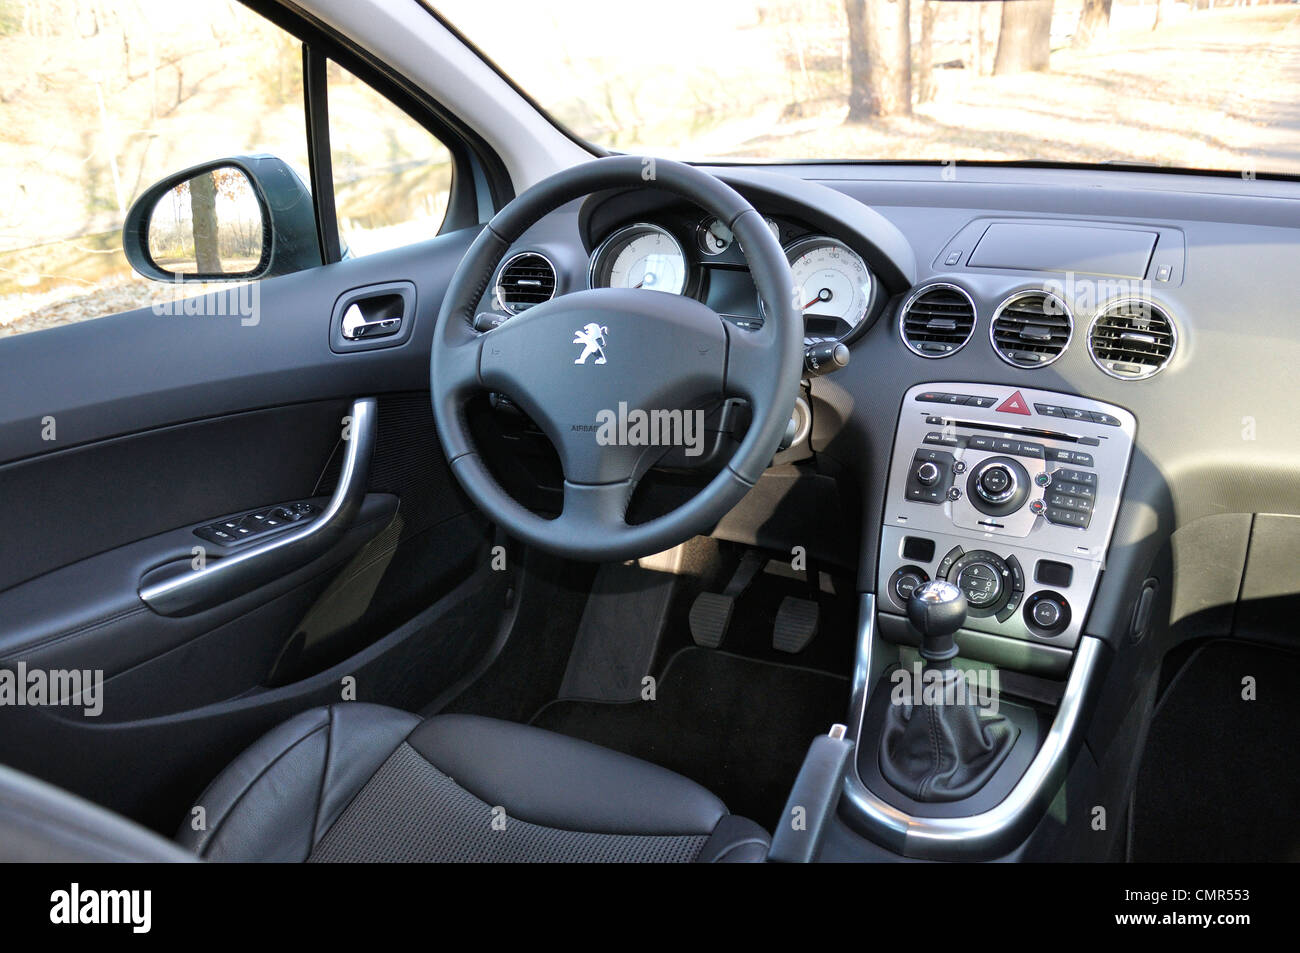 Peugeot 308 Sw Interieur Interior Dashboard Cockpit Peugeot Stock Photos Interior